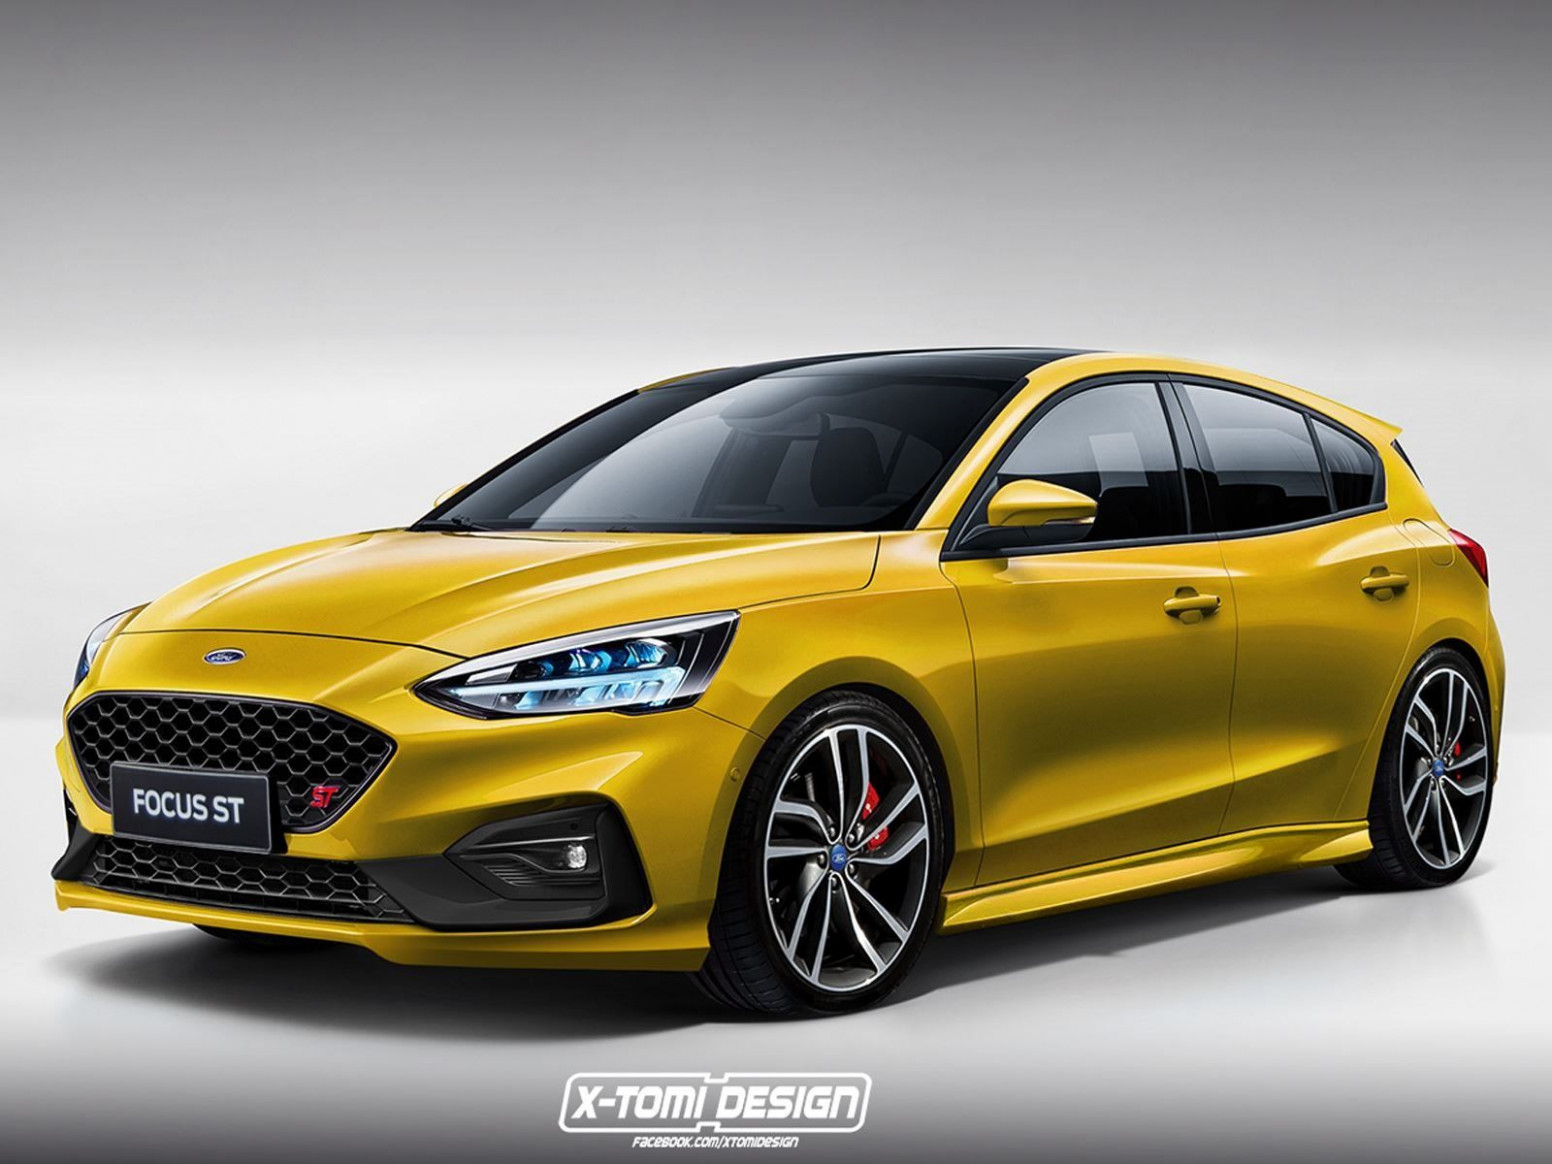 Redesign and Concept 2022 Ford Fiesta St Rs